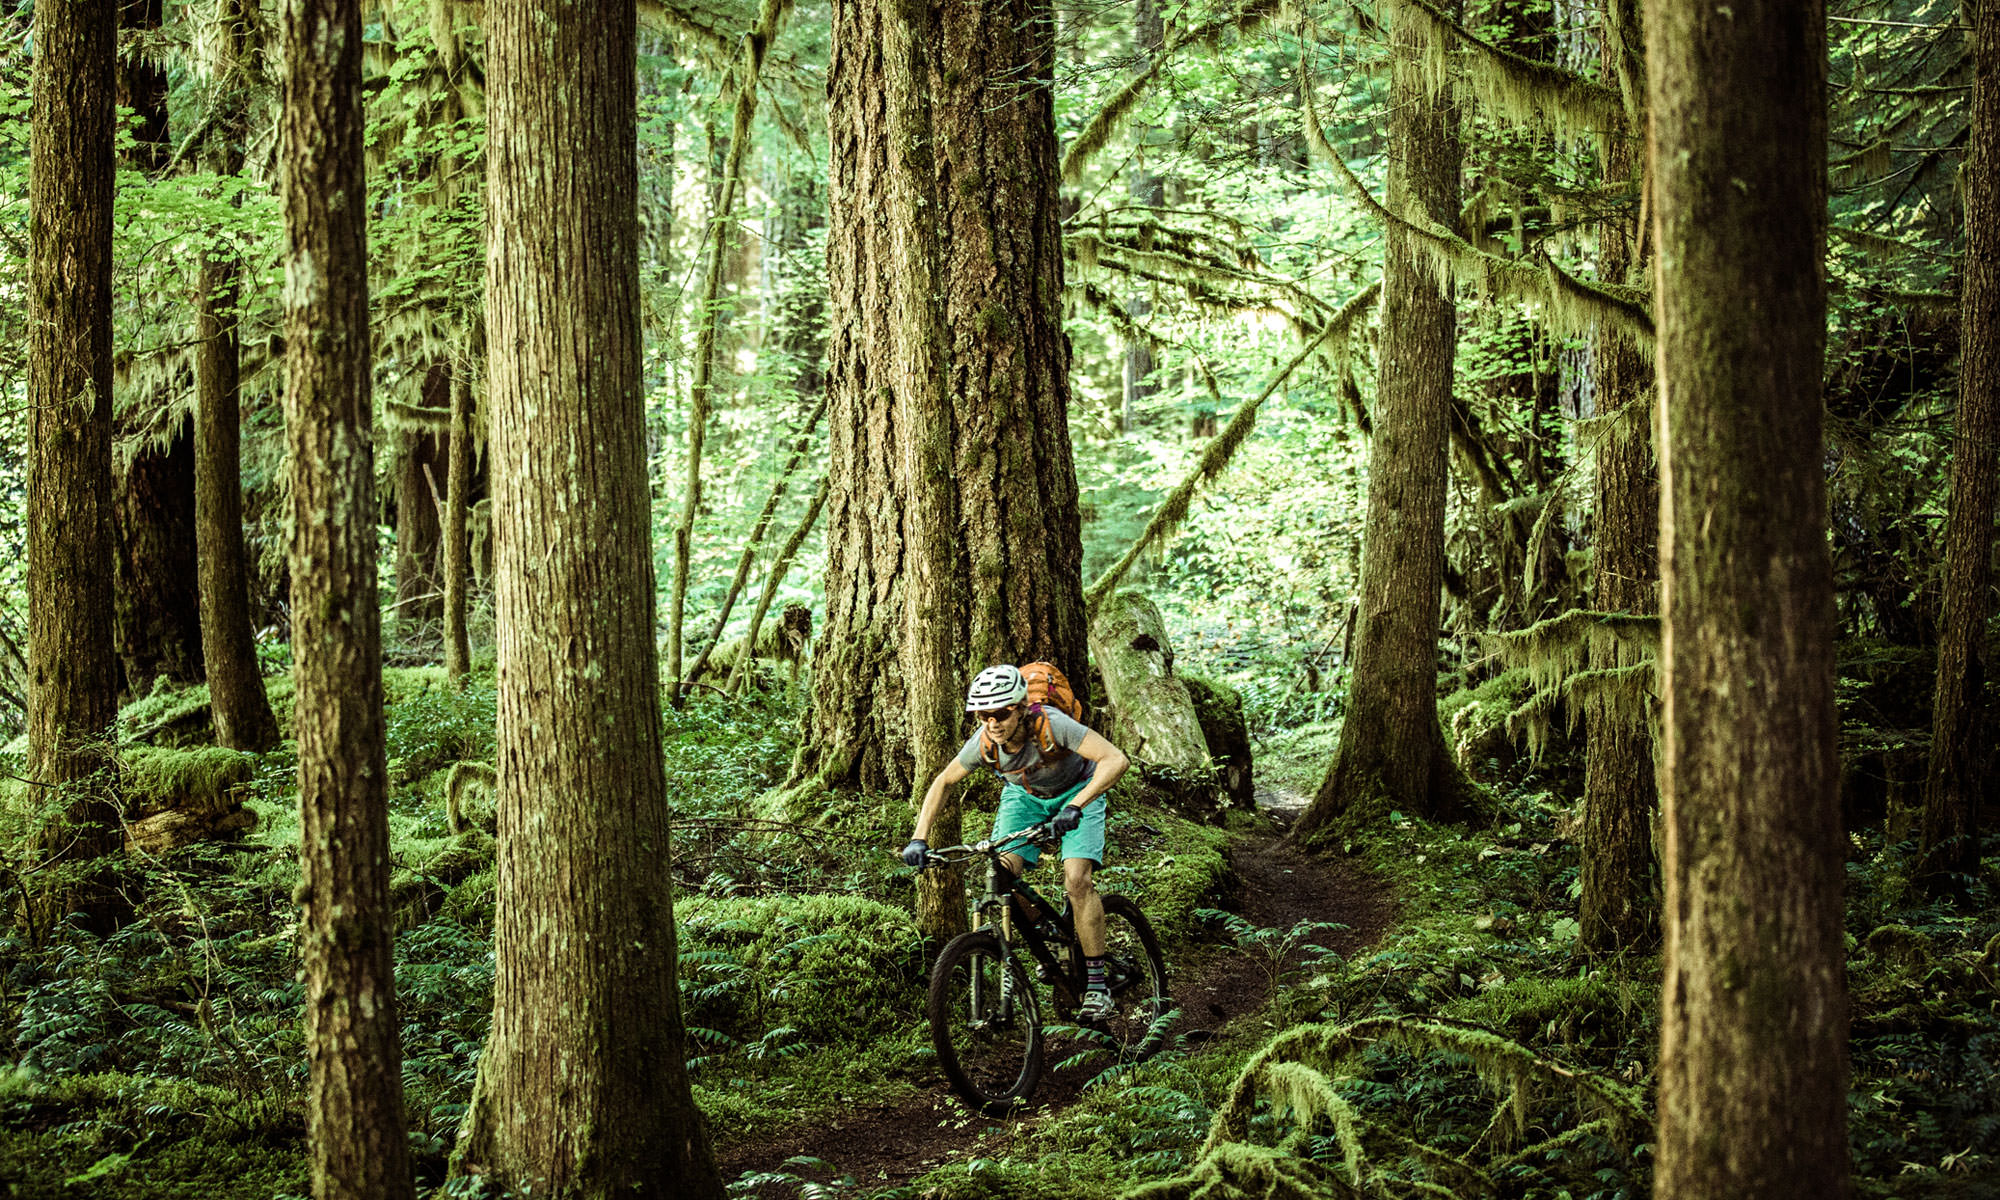 A mountain biker pedals through a mossy forest on a singletrack trail.